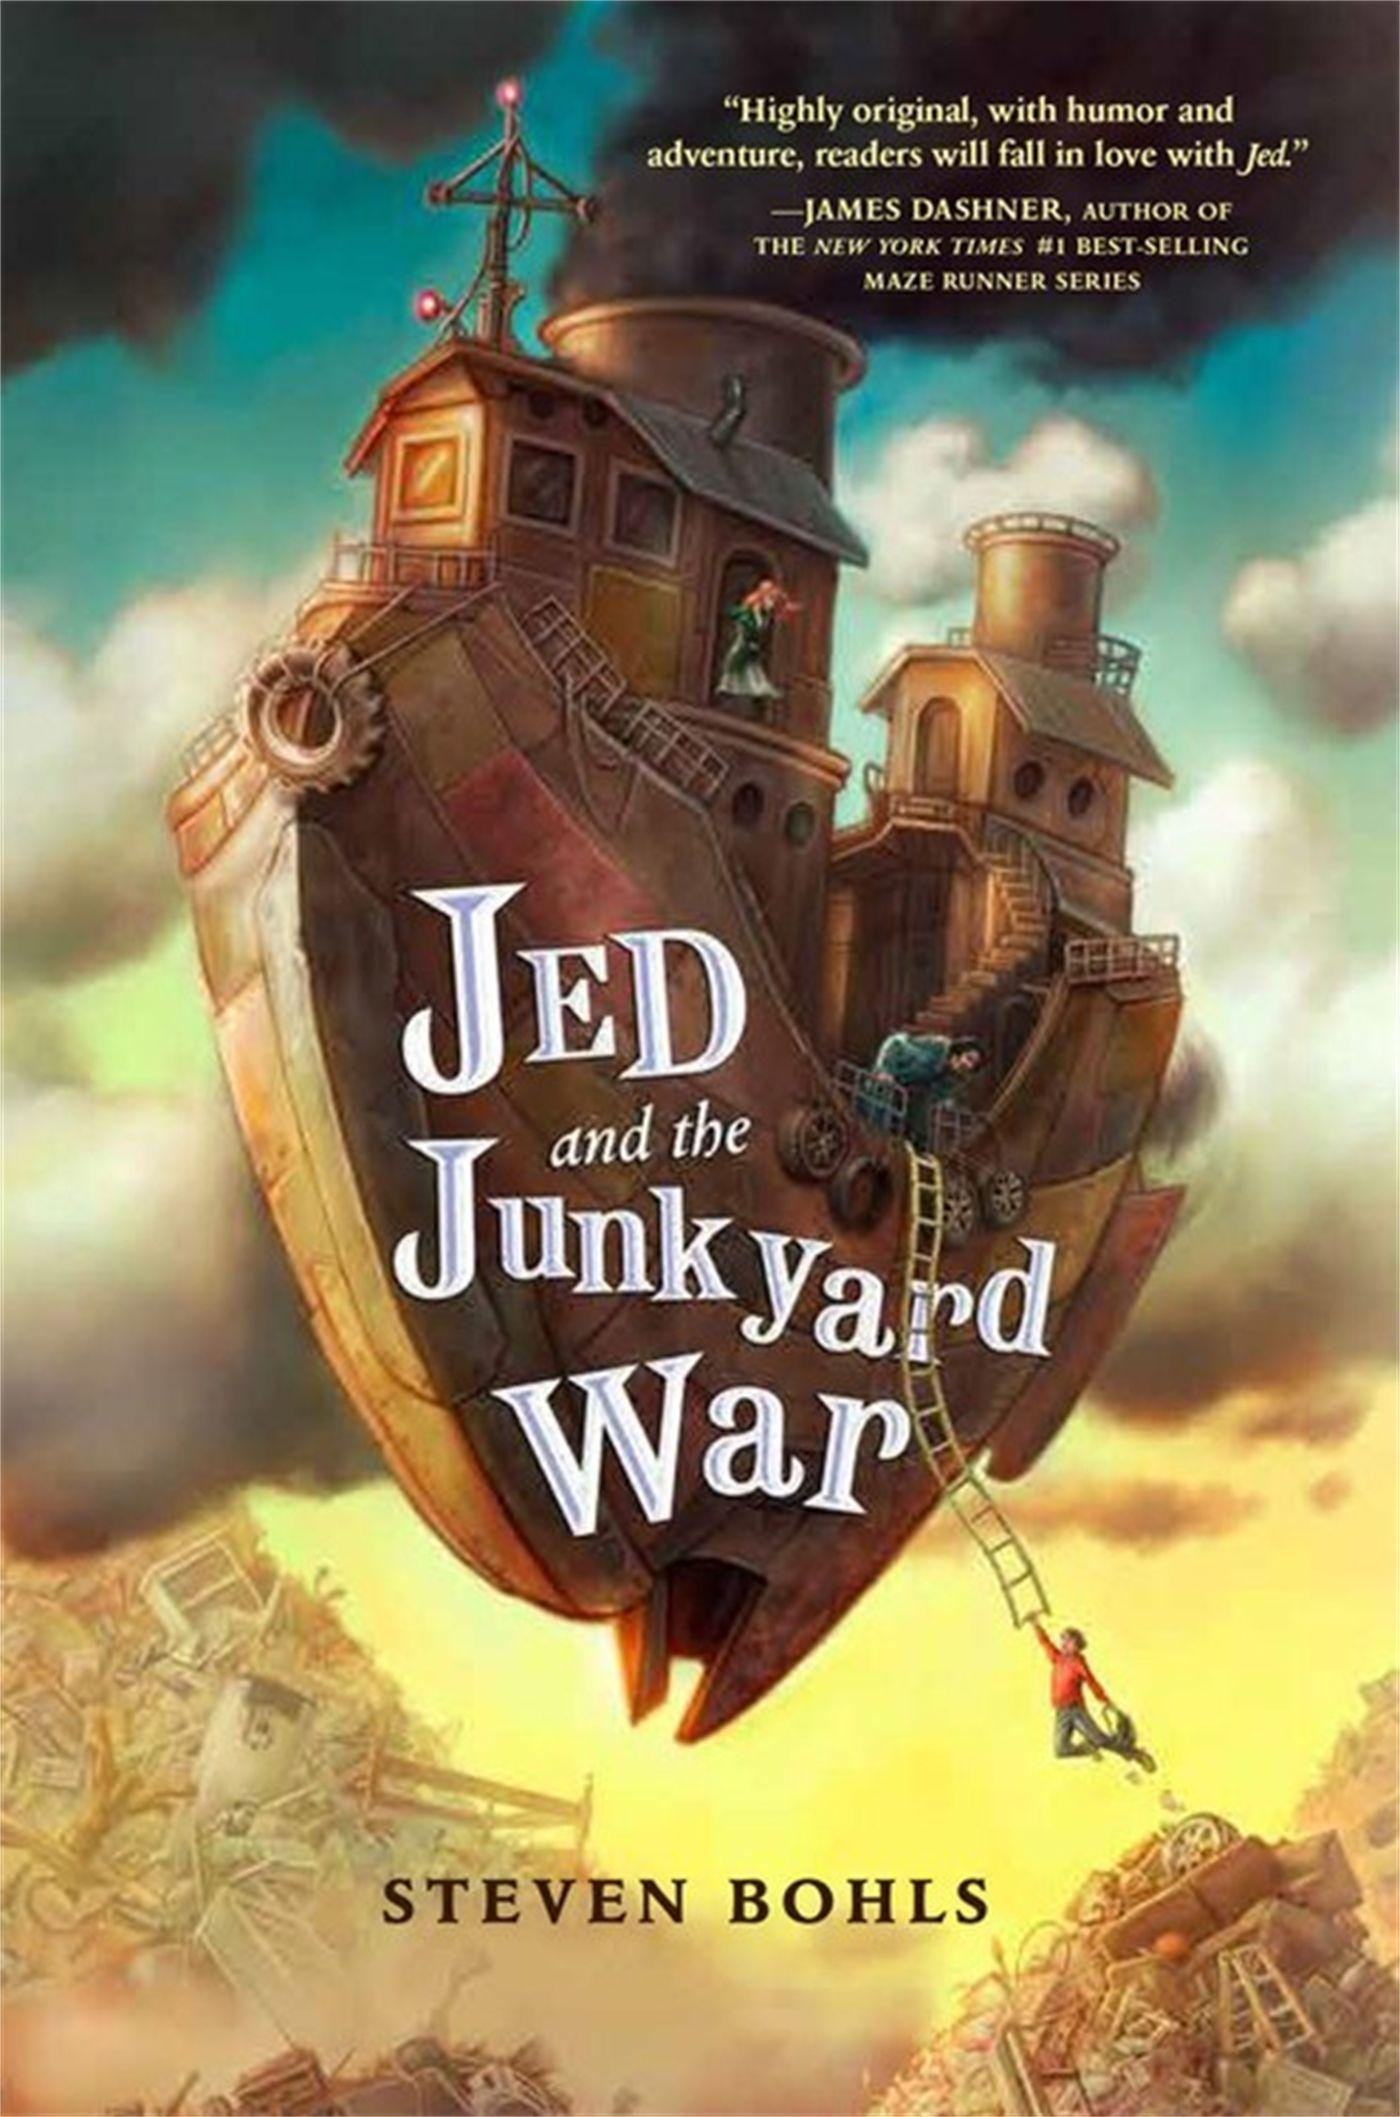 Jed & The Junkyard War Von Steven Bohls